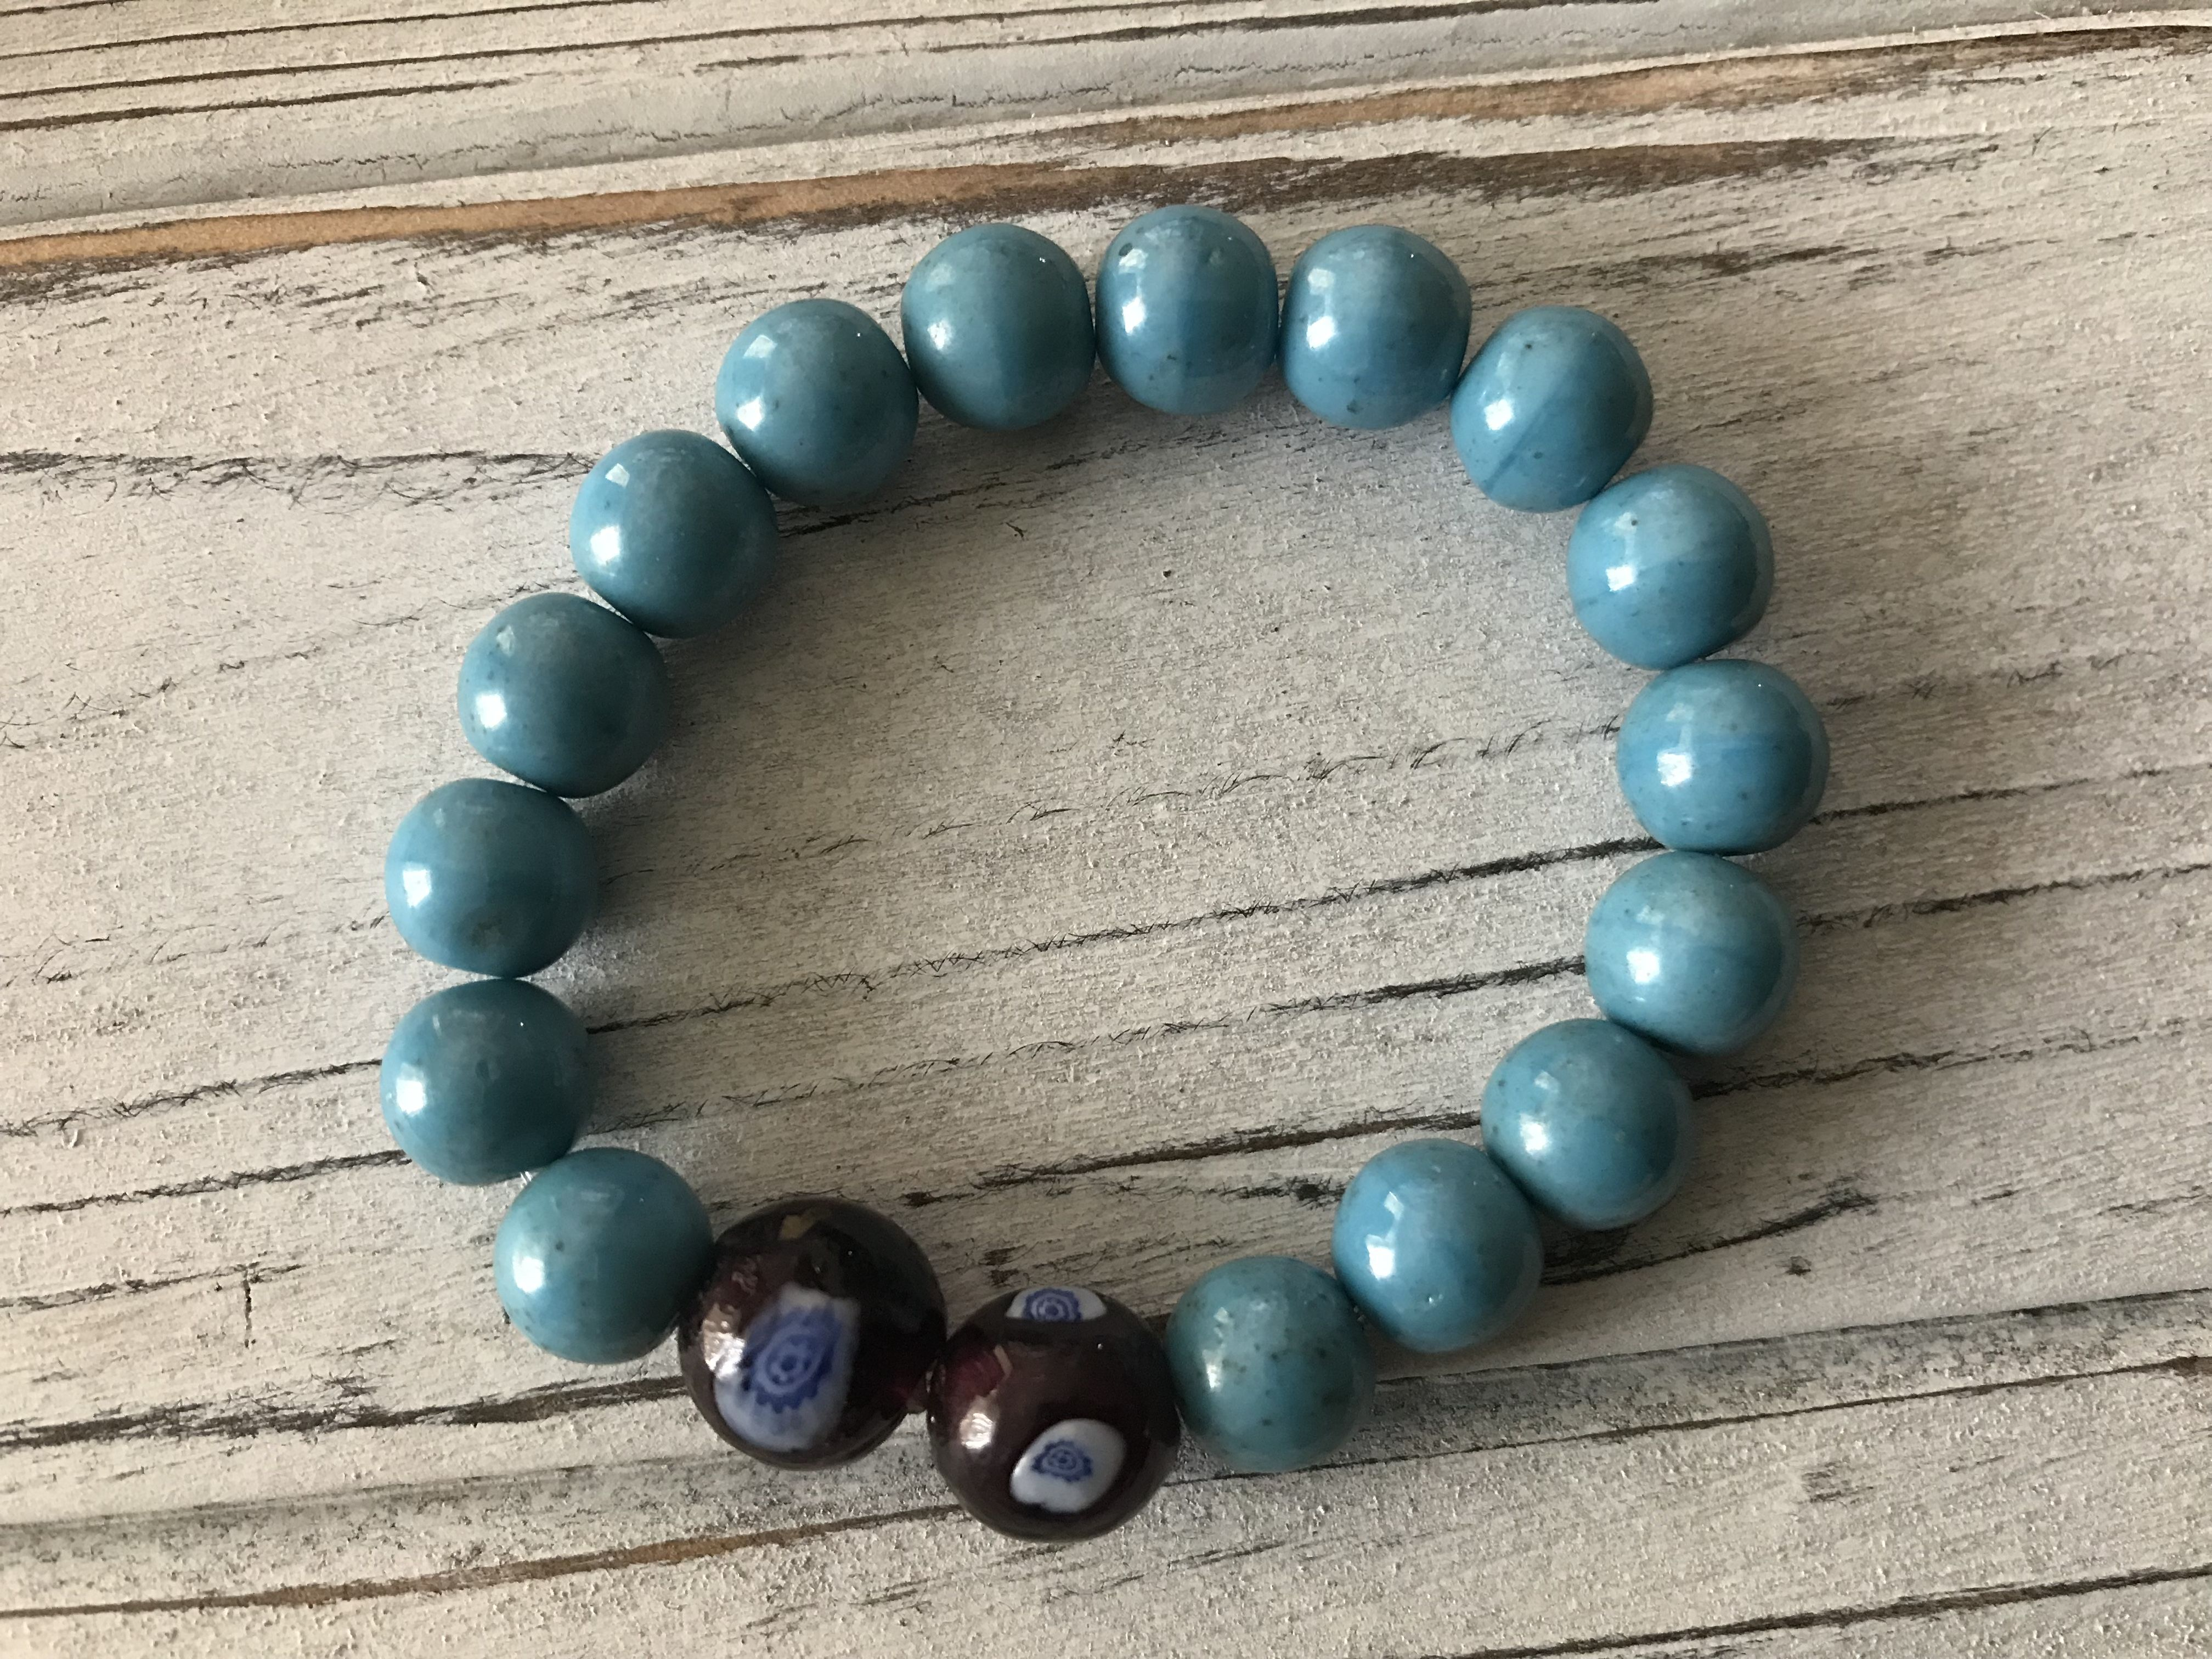 positiveenergy madewithlove healingstones forhim forher stretch gemstones turquoise handmade stackable